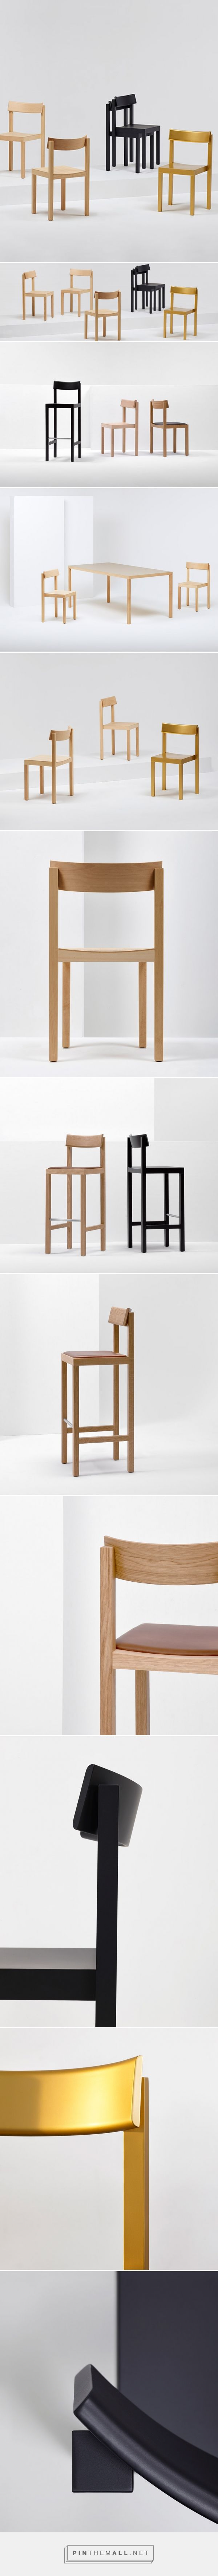 konstantin grcic epitomizes archetypal chair in primo collection for mattiazzi created via s